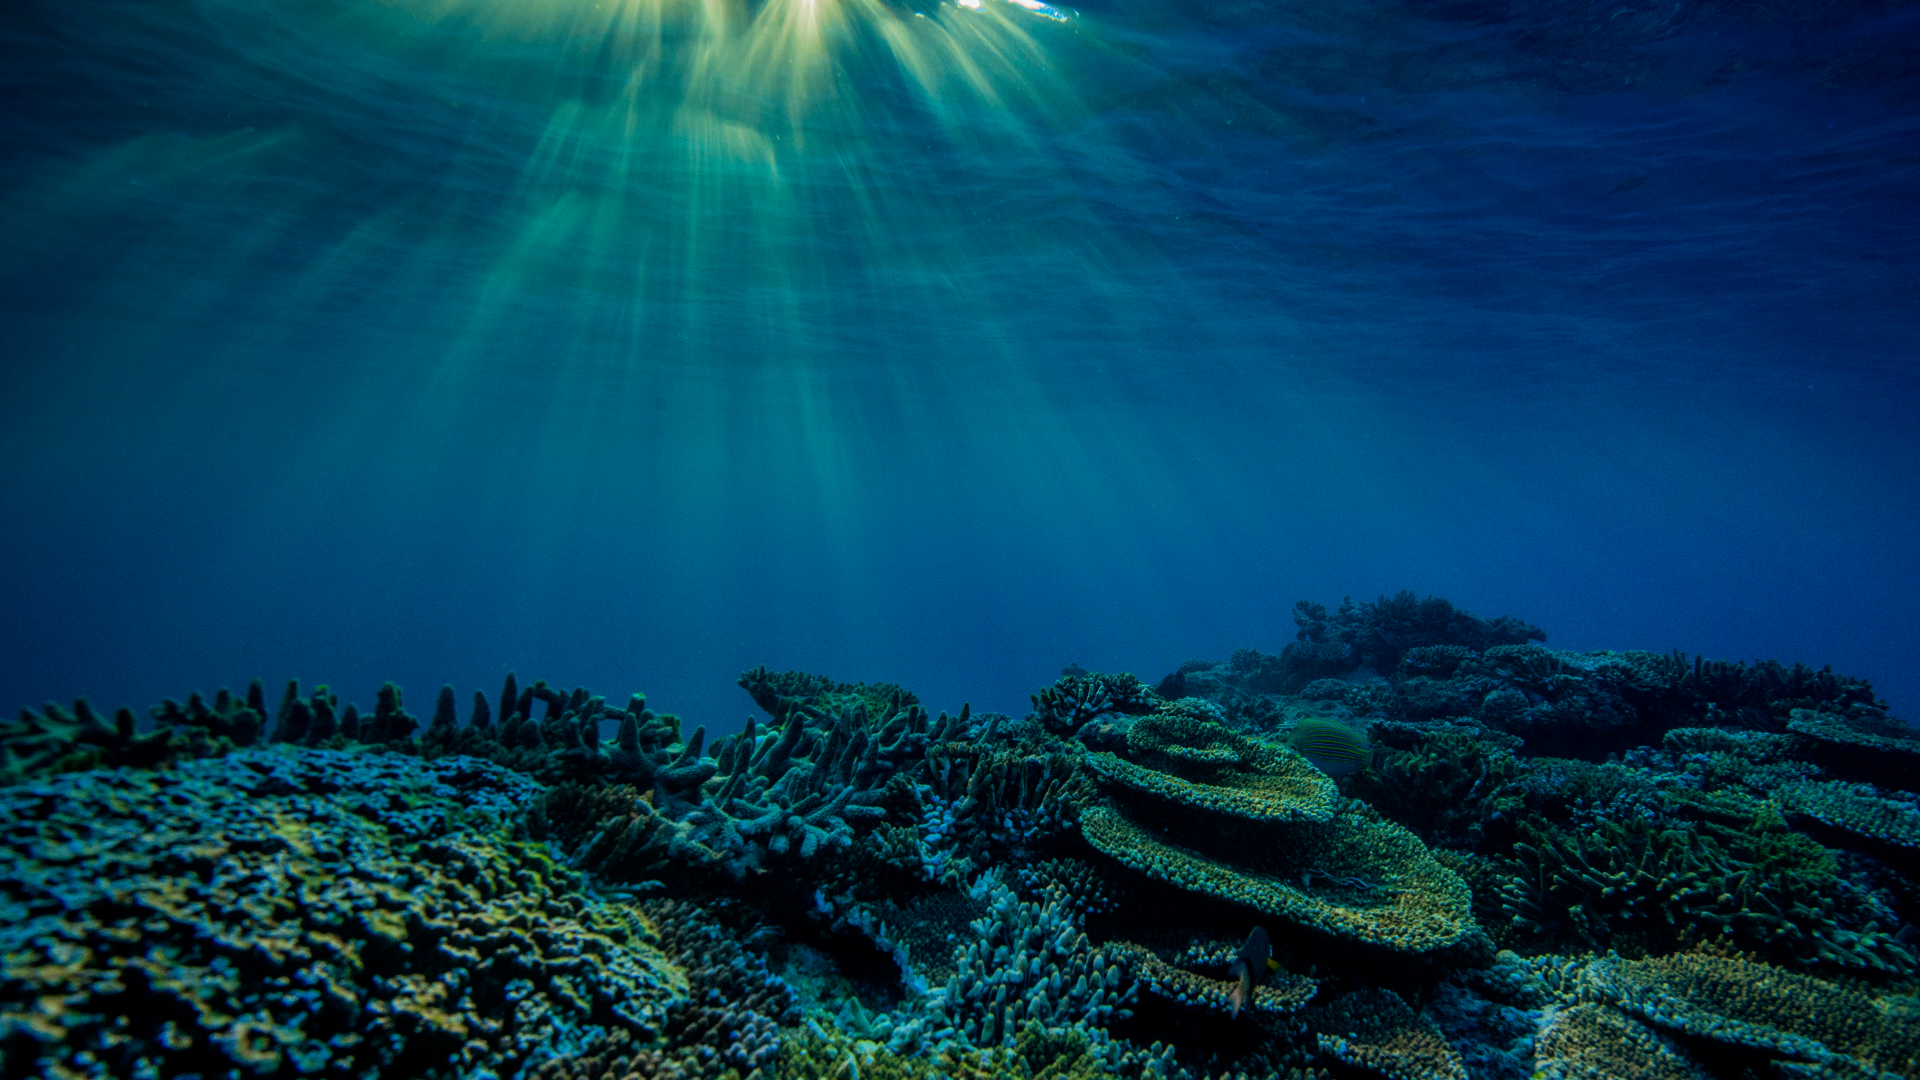 During the International Year of the Reef in 2018, the Australian Government announced the largest ever single investment in reef protection.